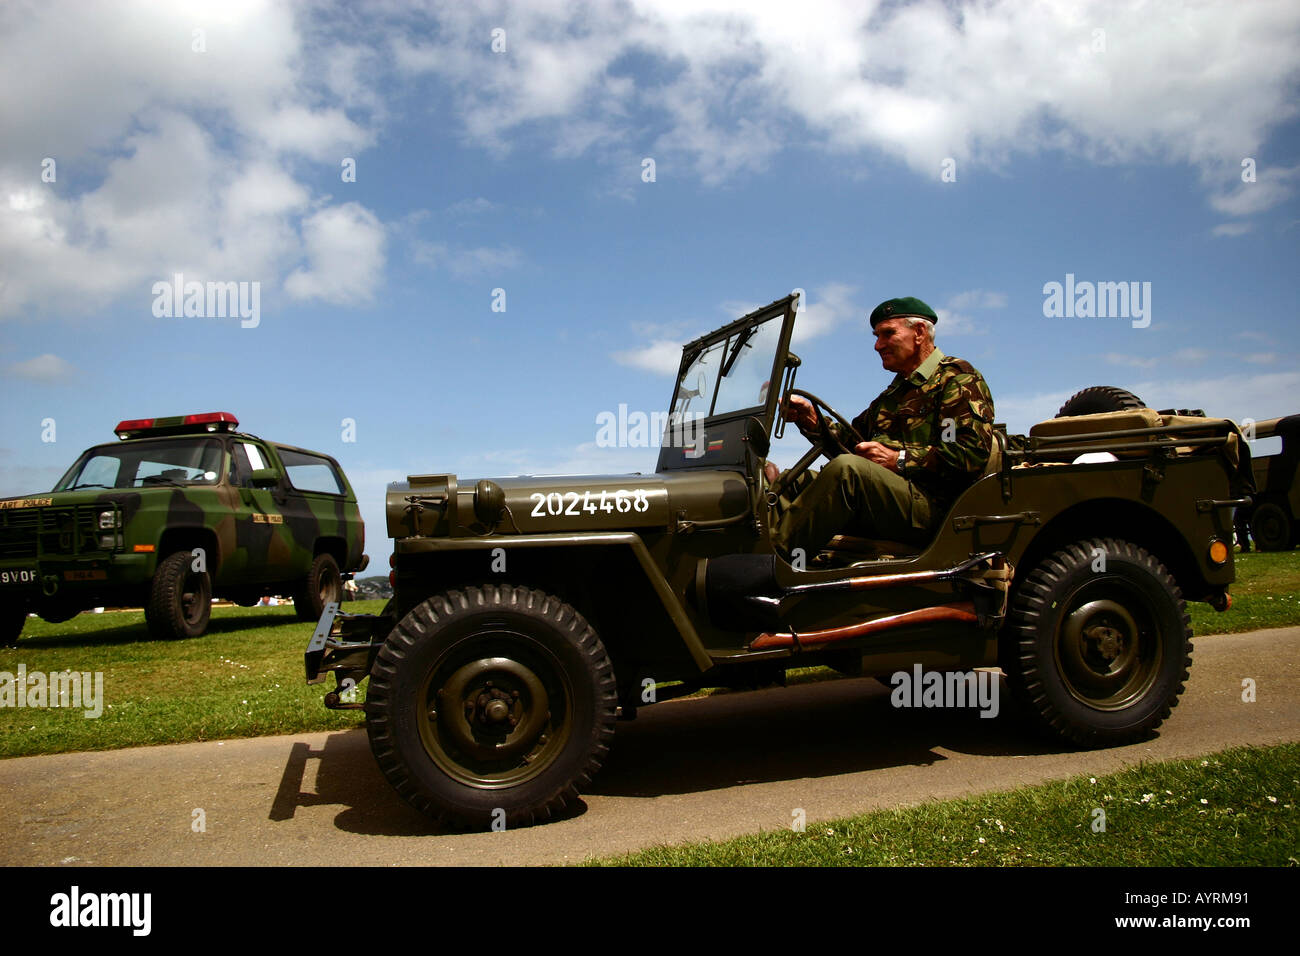 US Jeep at VE day aniversary celebrations, Pendennis Castle, Falmouth, Cornwall. 2005 - Stock Image